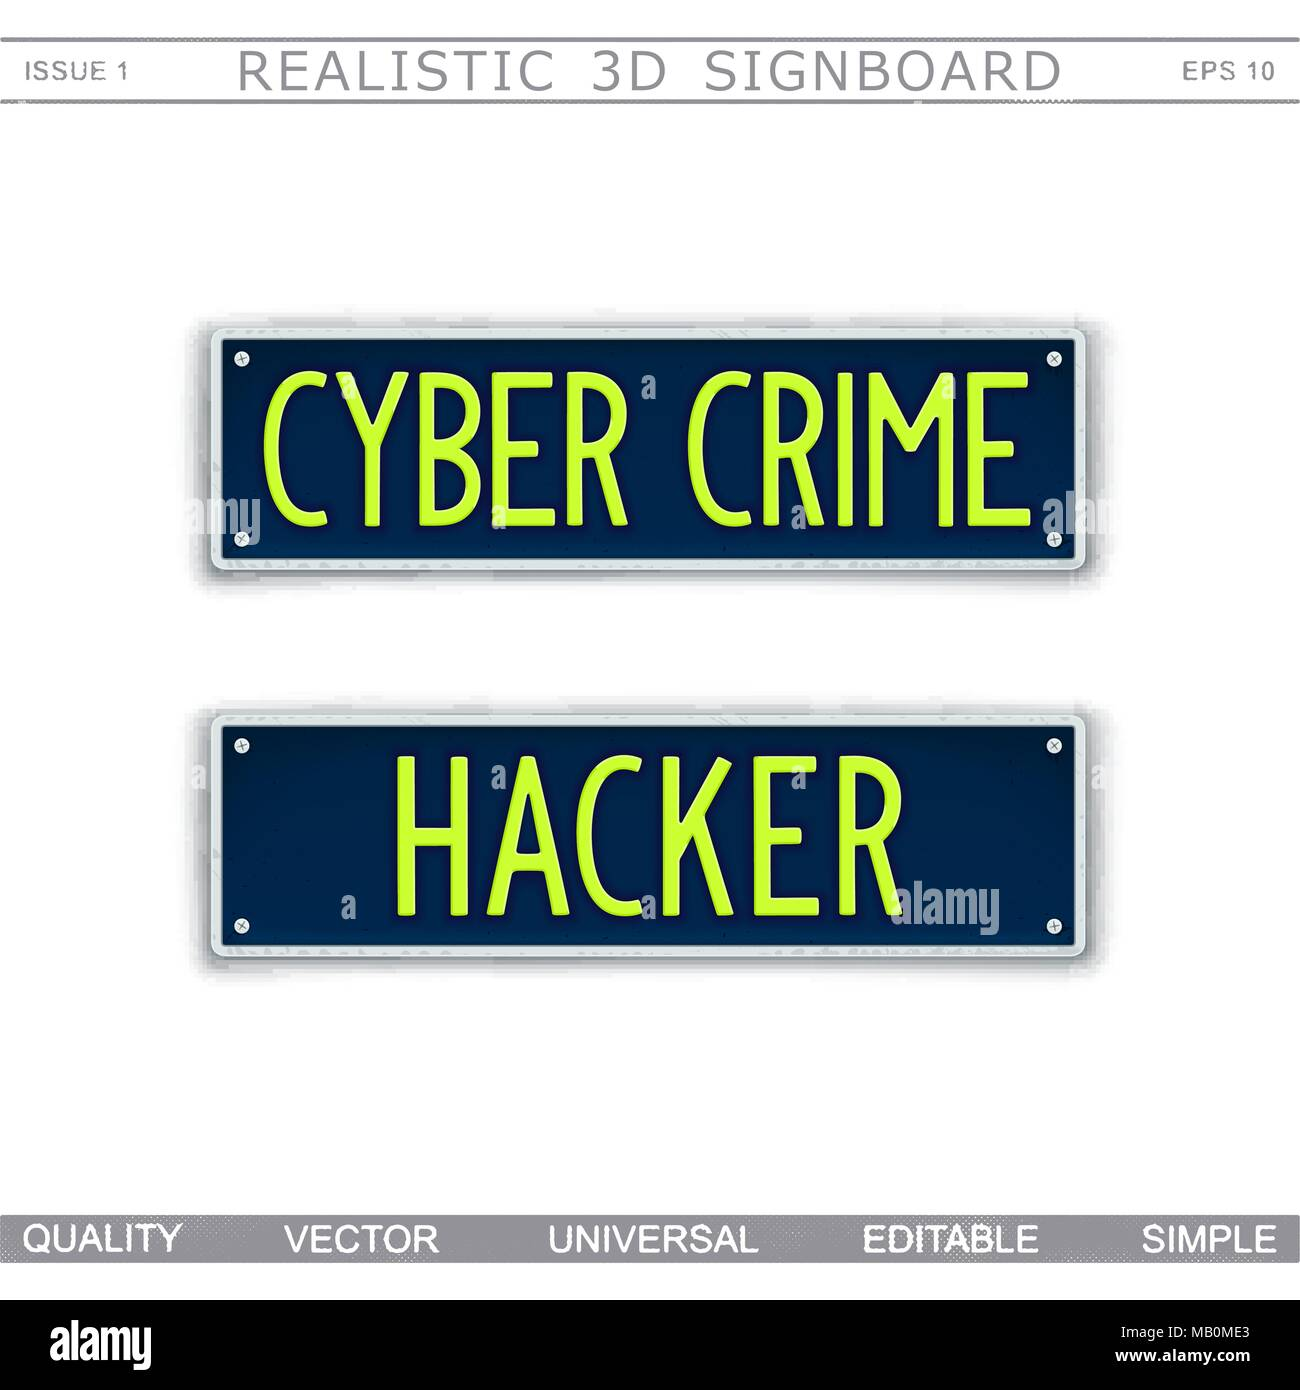 Conceptual signboard design. Cyber Crime. Hacker. Car license plate stylized. Vector elements - Stock Image